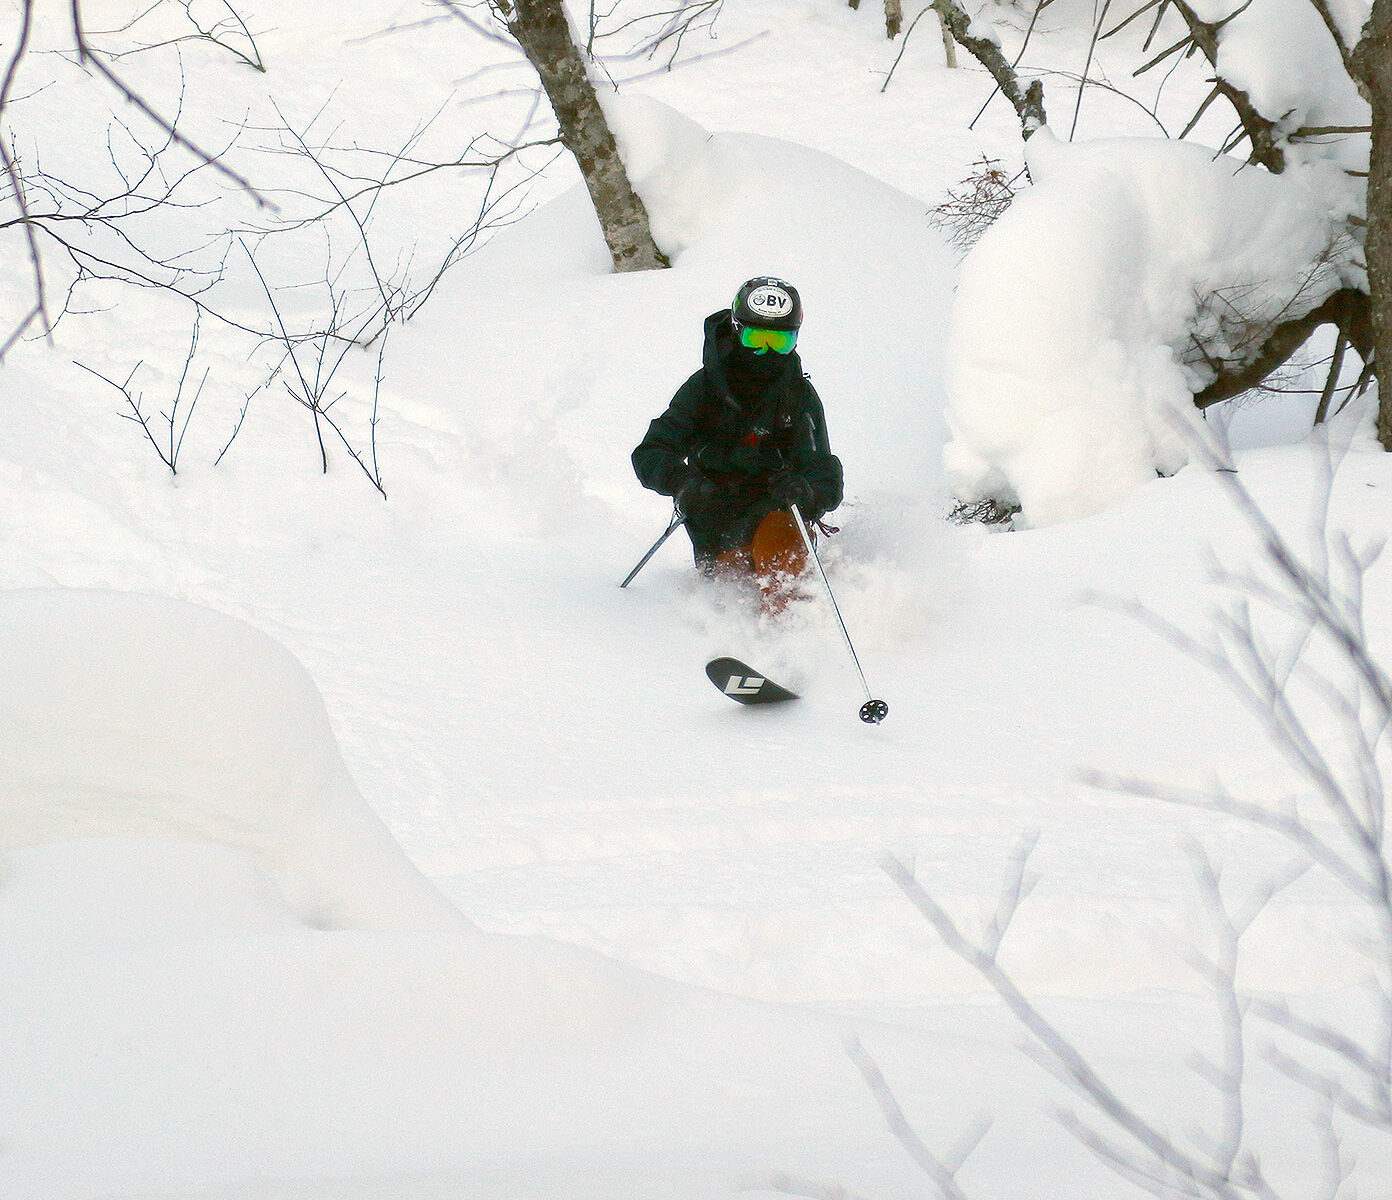 An image of Ty Telemark skiing in deep powder from Winter Storm Viola in the Big Jay Basin backcountry near Jay Peak Resort in Vermont